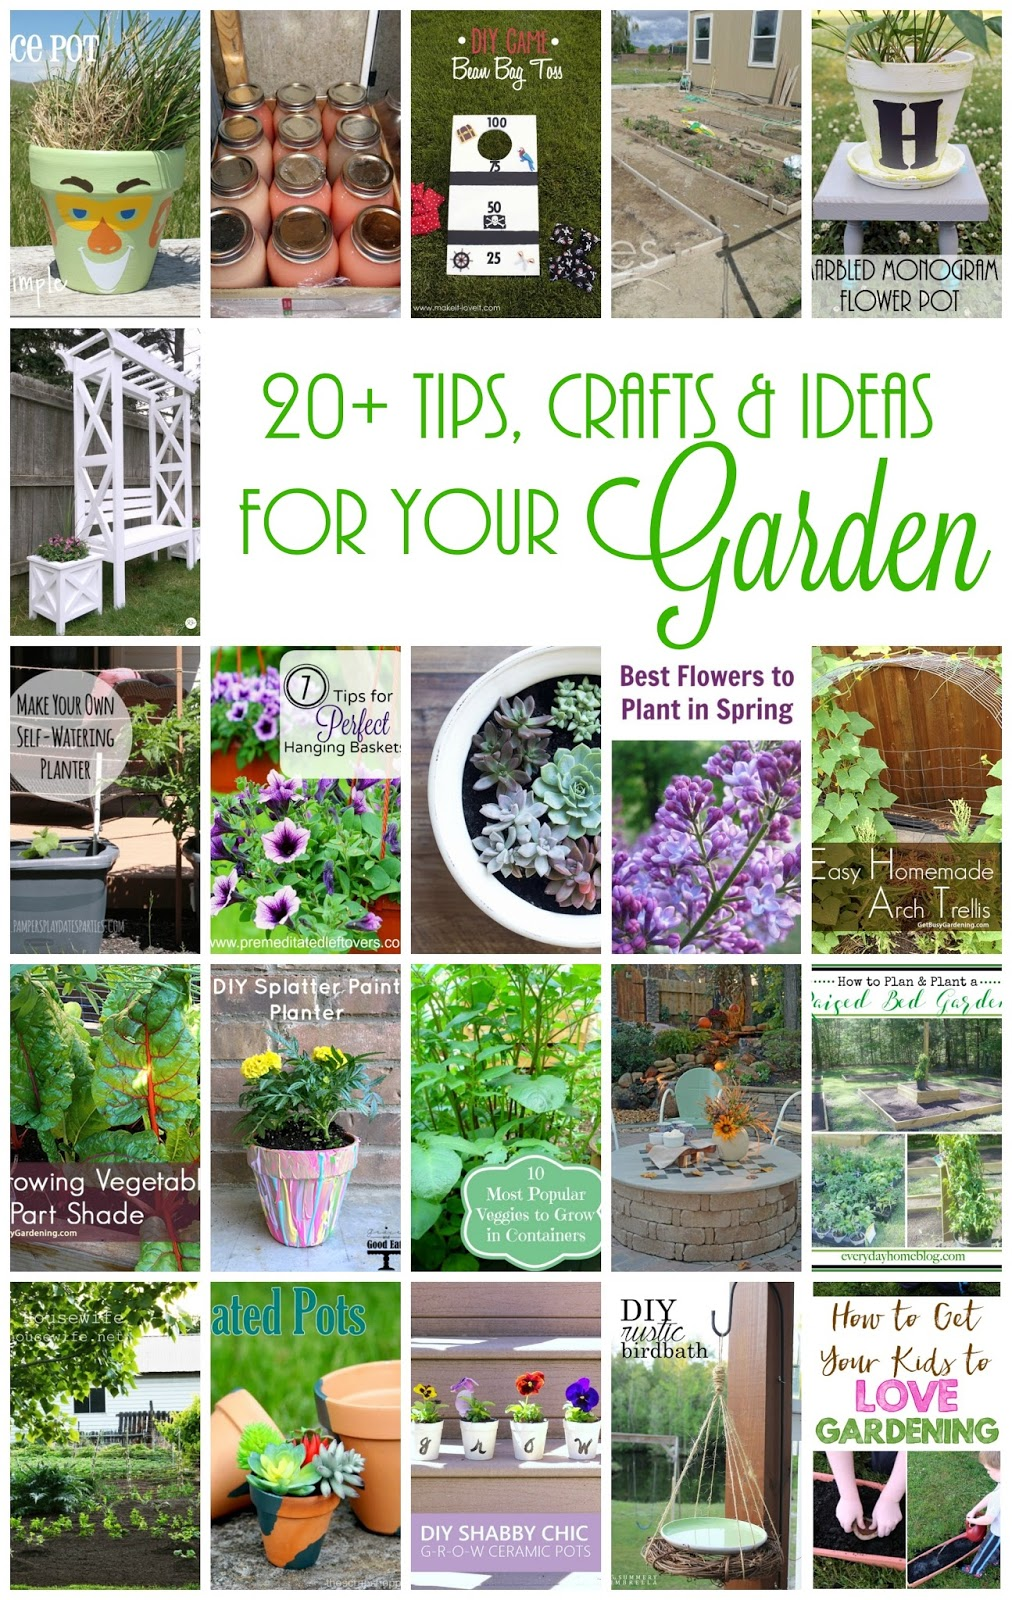 20+ Ideas, Crafts and Tips for Your Garden